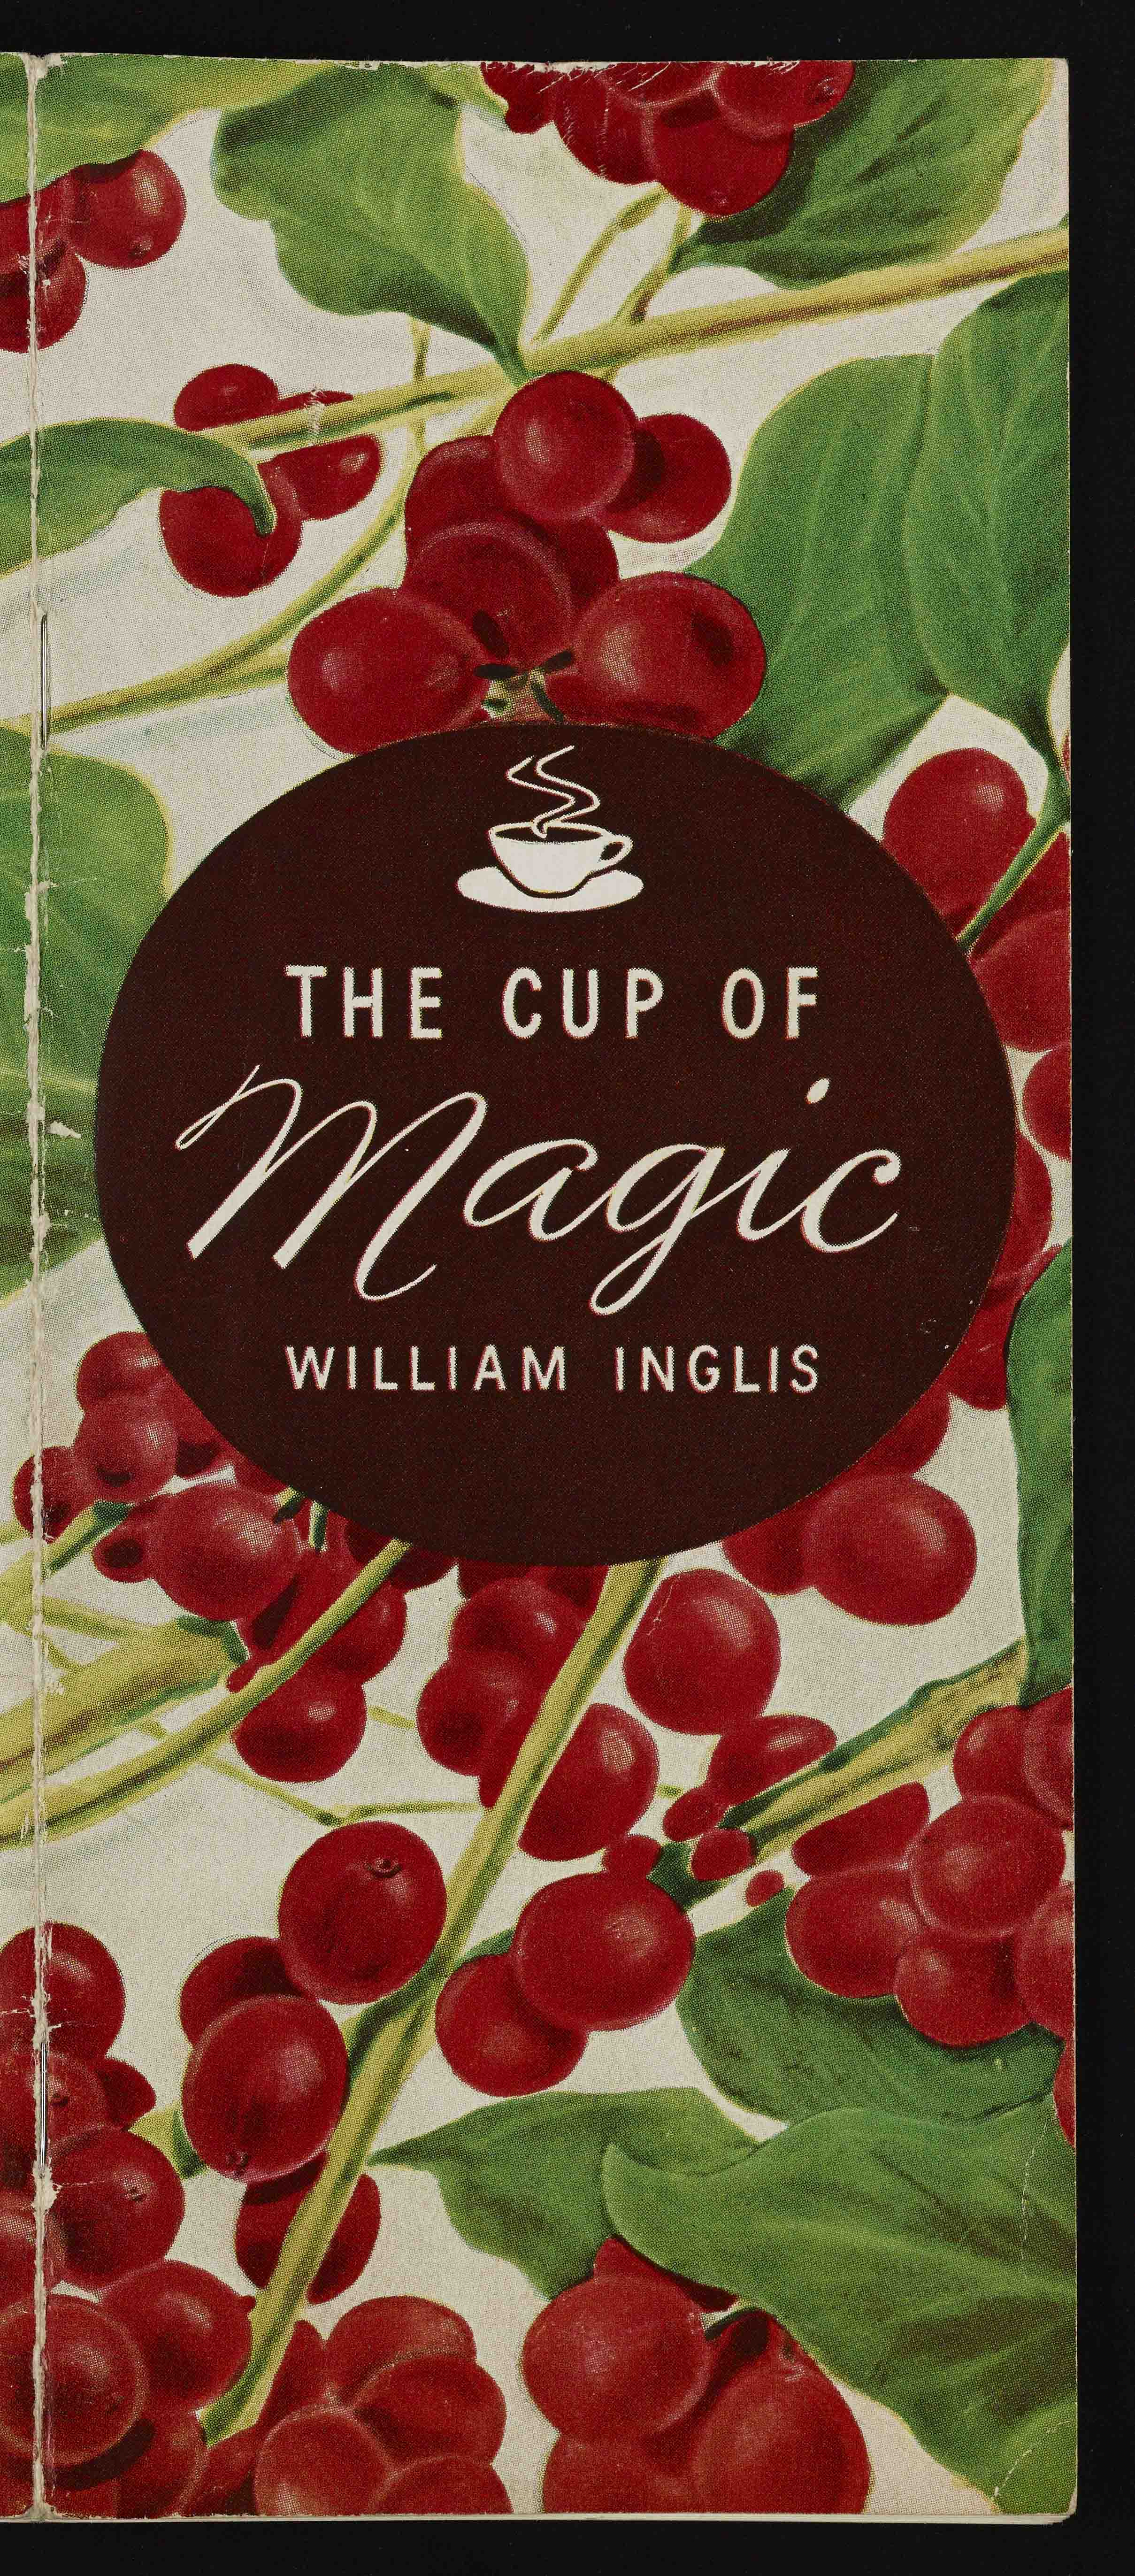 The Cup of Magic